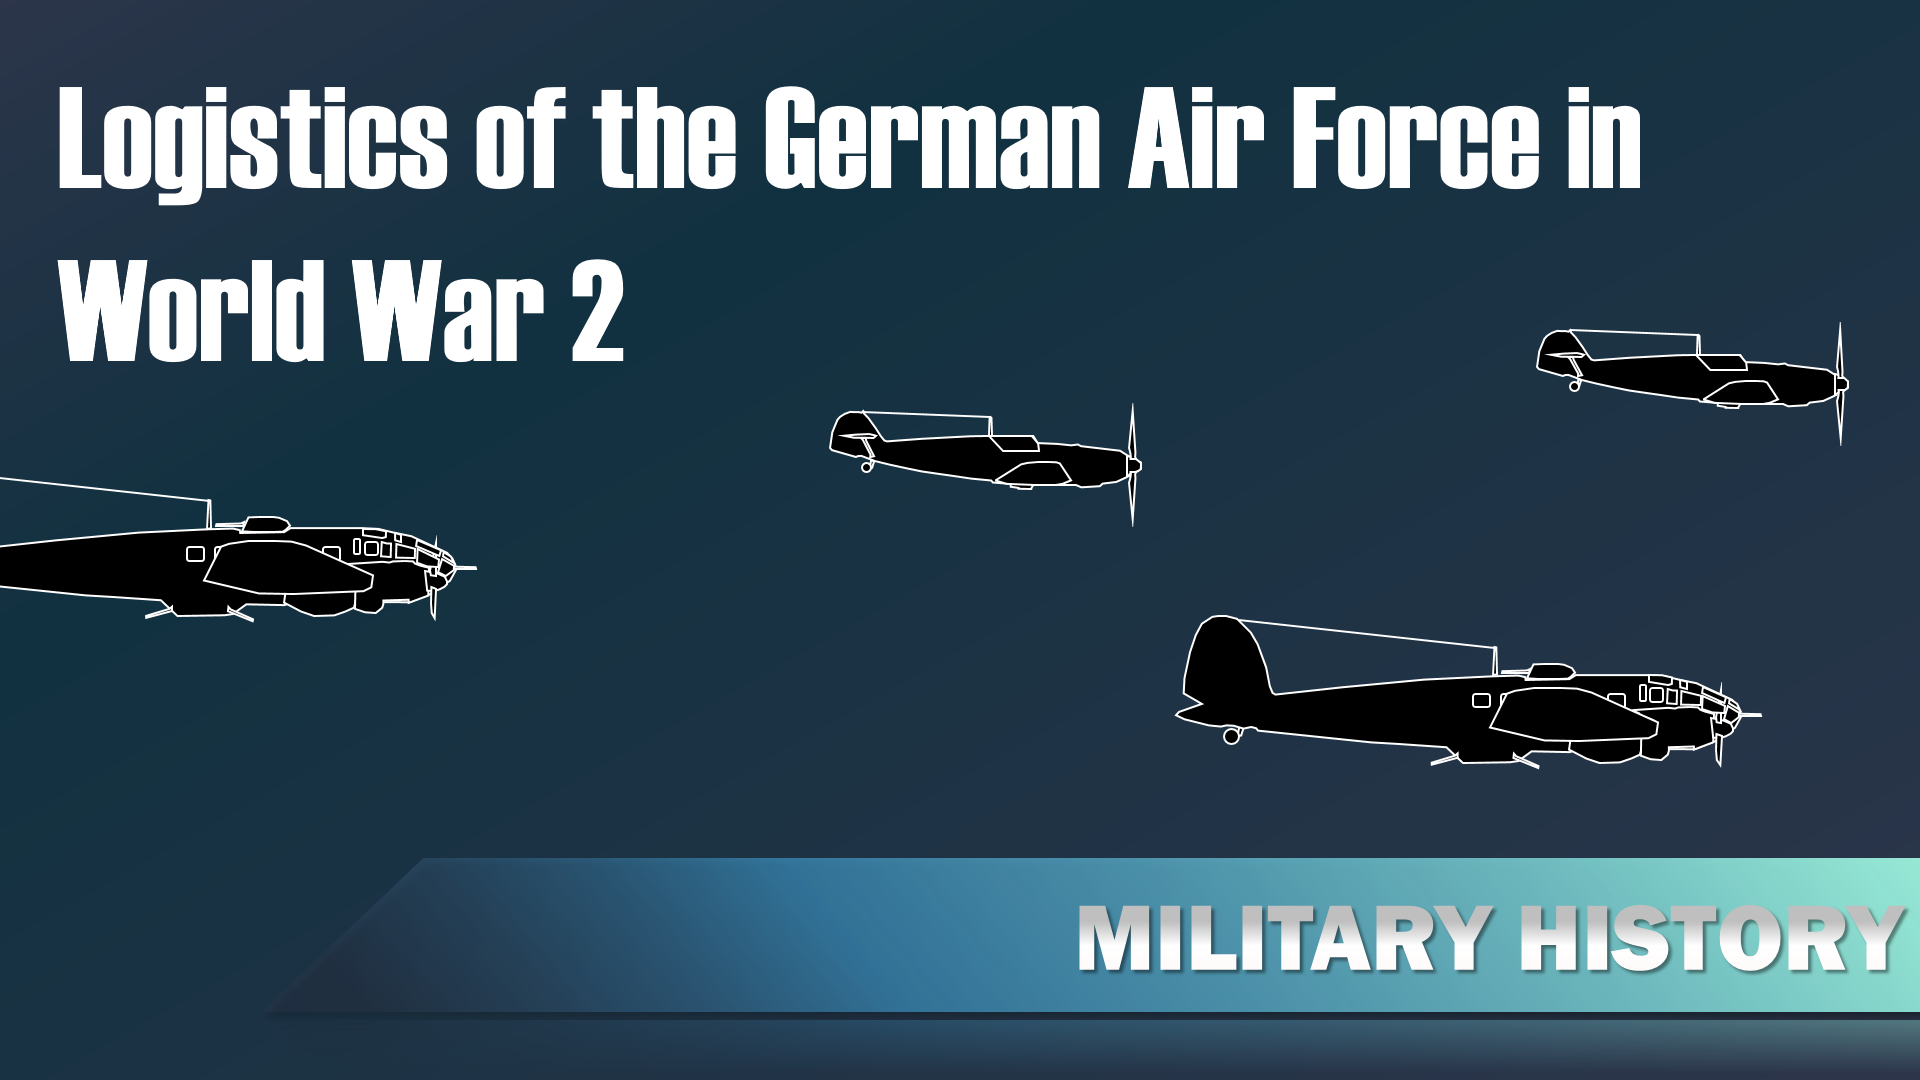 Logistics of the Luftwaffe in World War 2